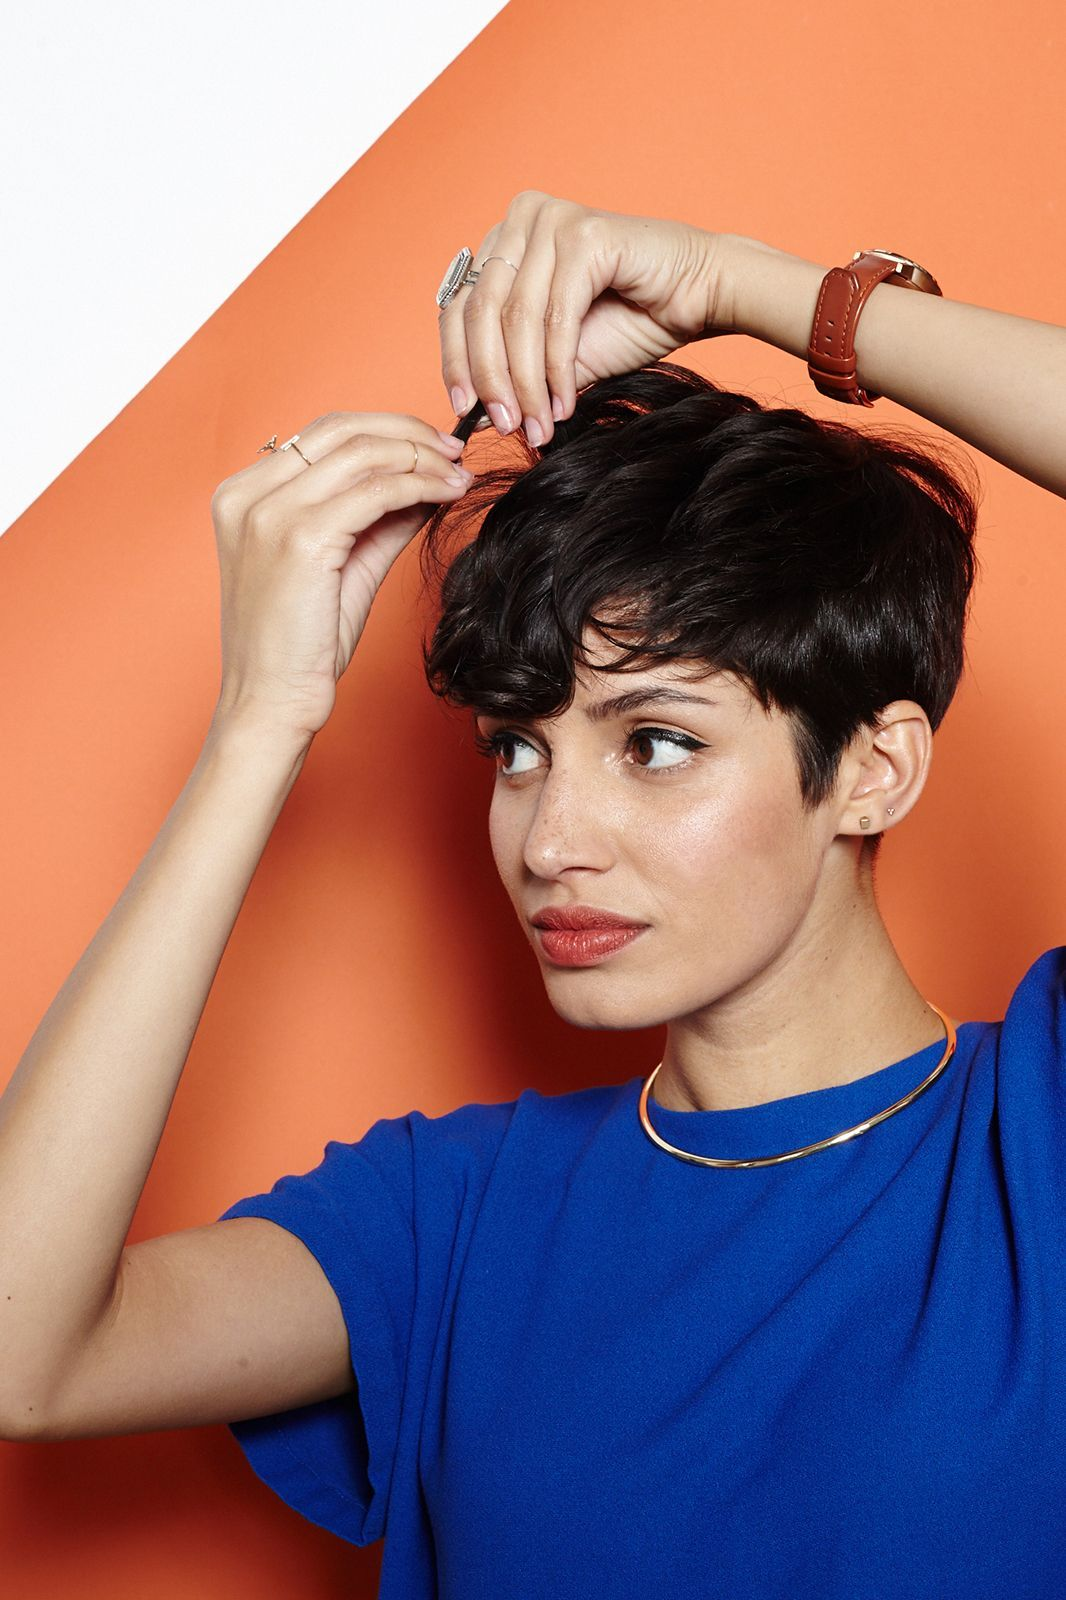 Pixie hairstyles new styles for really short hair hair short